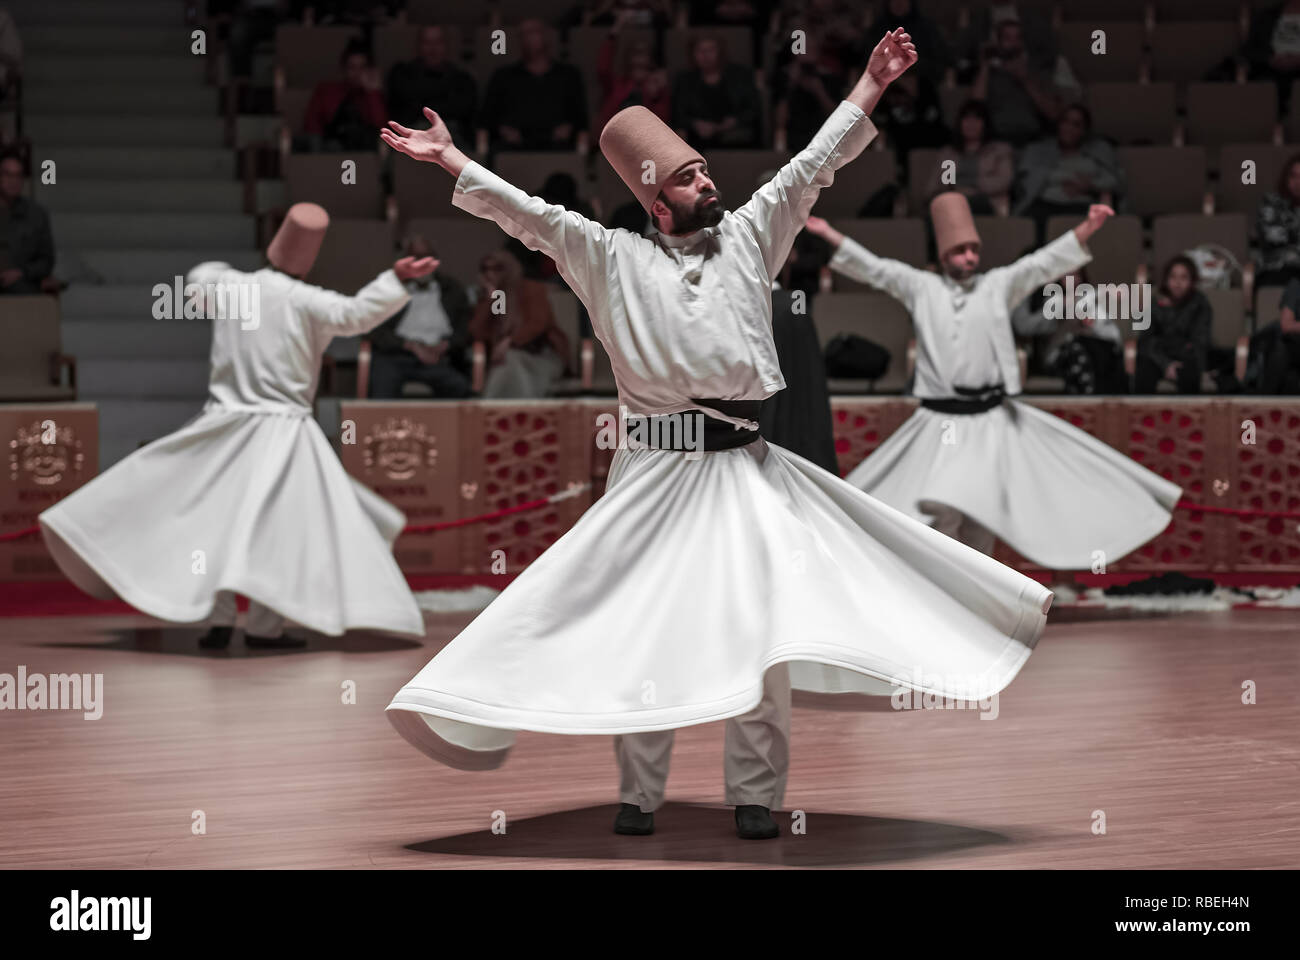 Konya, Turkey - October 20, 2018: Semazen or Whirling Dervishes at Mevlana Culture Center in Konya, Turkey - Stock Image